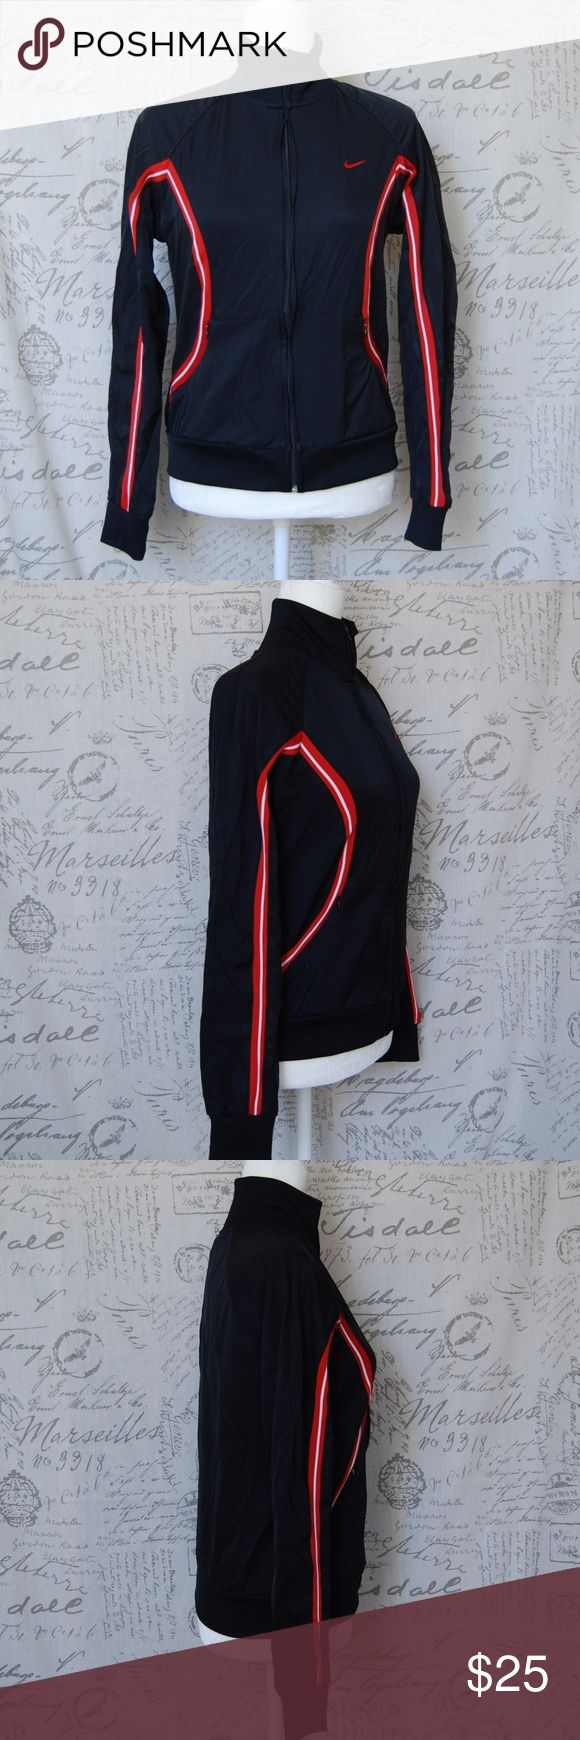 """Nike Black Red white Striped Zip Up Jacket M Nike Women's Black with Red and white Striped Zip Up Track Jacket  Medium 8-10 NOTE: front zipper part isn't covered but kind of bulges out (see last photo) not a big deal, but not smooth.  Measurements are taken with garment laying flat. Length: 22"""" Armpit to armpit: 18"""" Sleeves: 28"""" measured from collar hem Nike Jackets & Coats"""